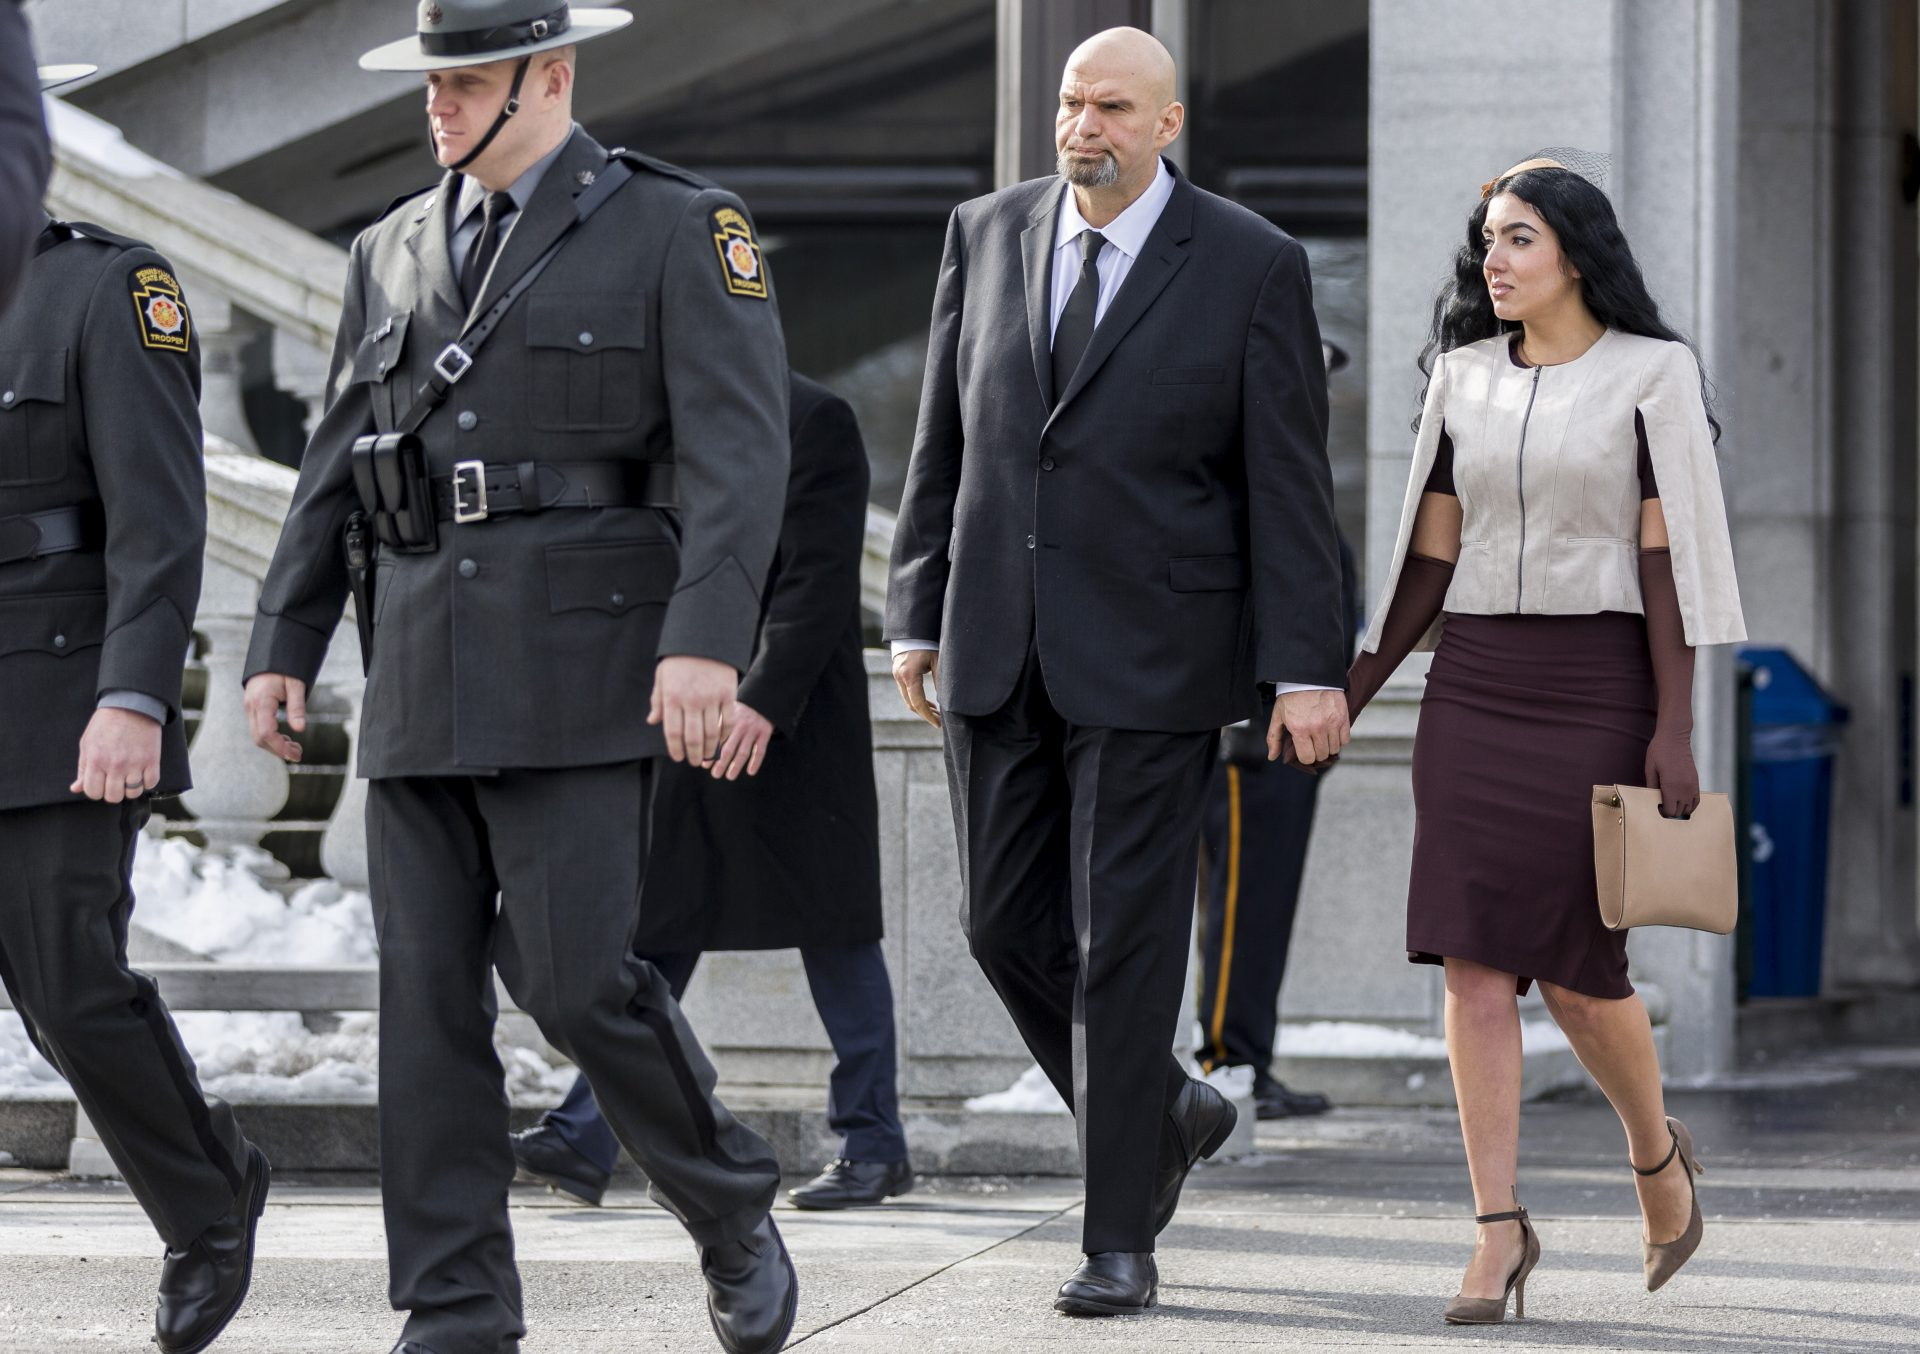 Pa. Lt. Gov. John Fetterman and his wife Gisele make their way to the stage before the inauguration of Pa. Gov. Tom Wolf held outside the Capitol East Wing on Jan. 15, 2019.